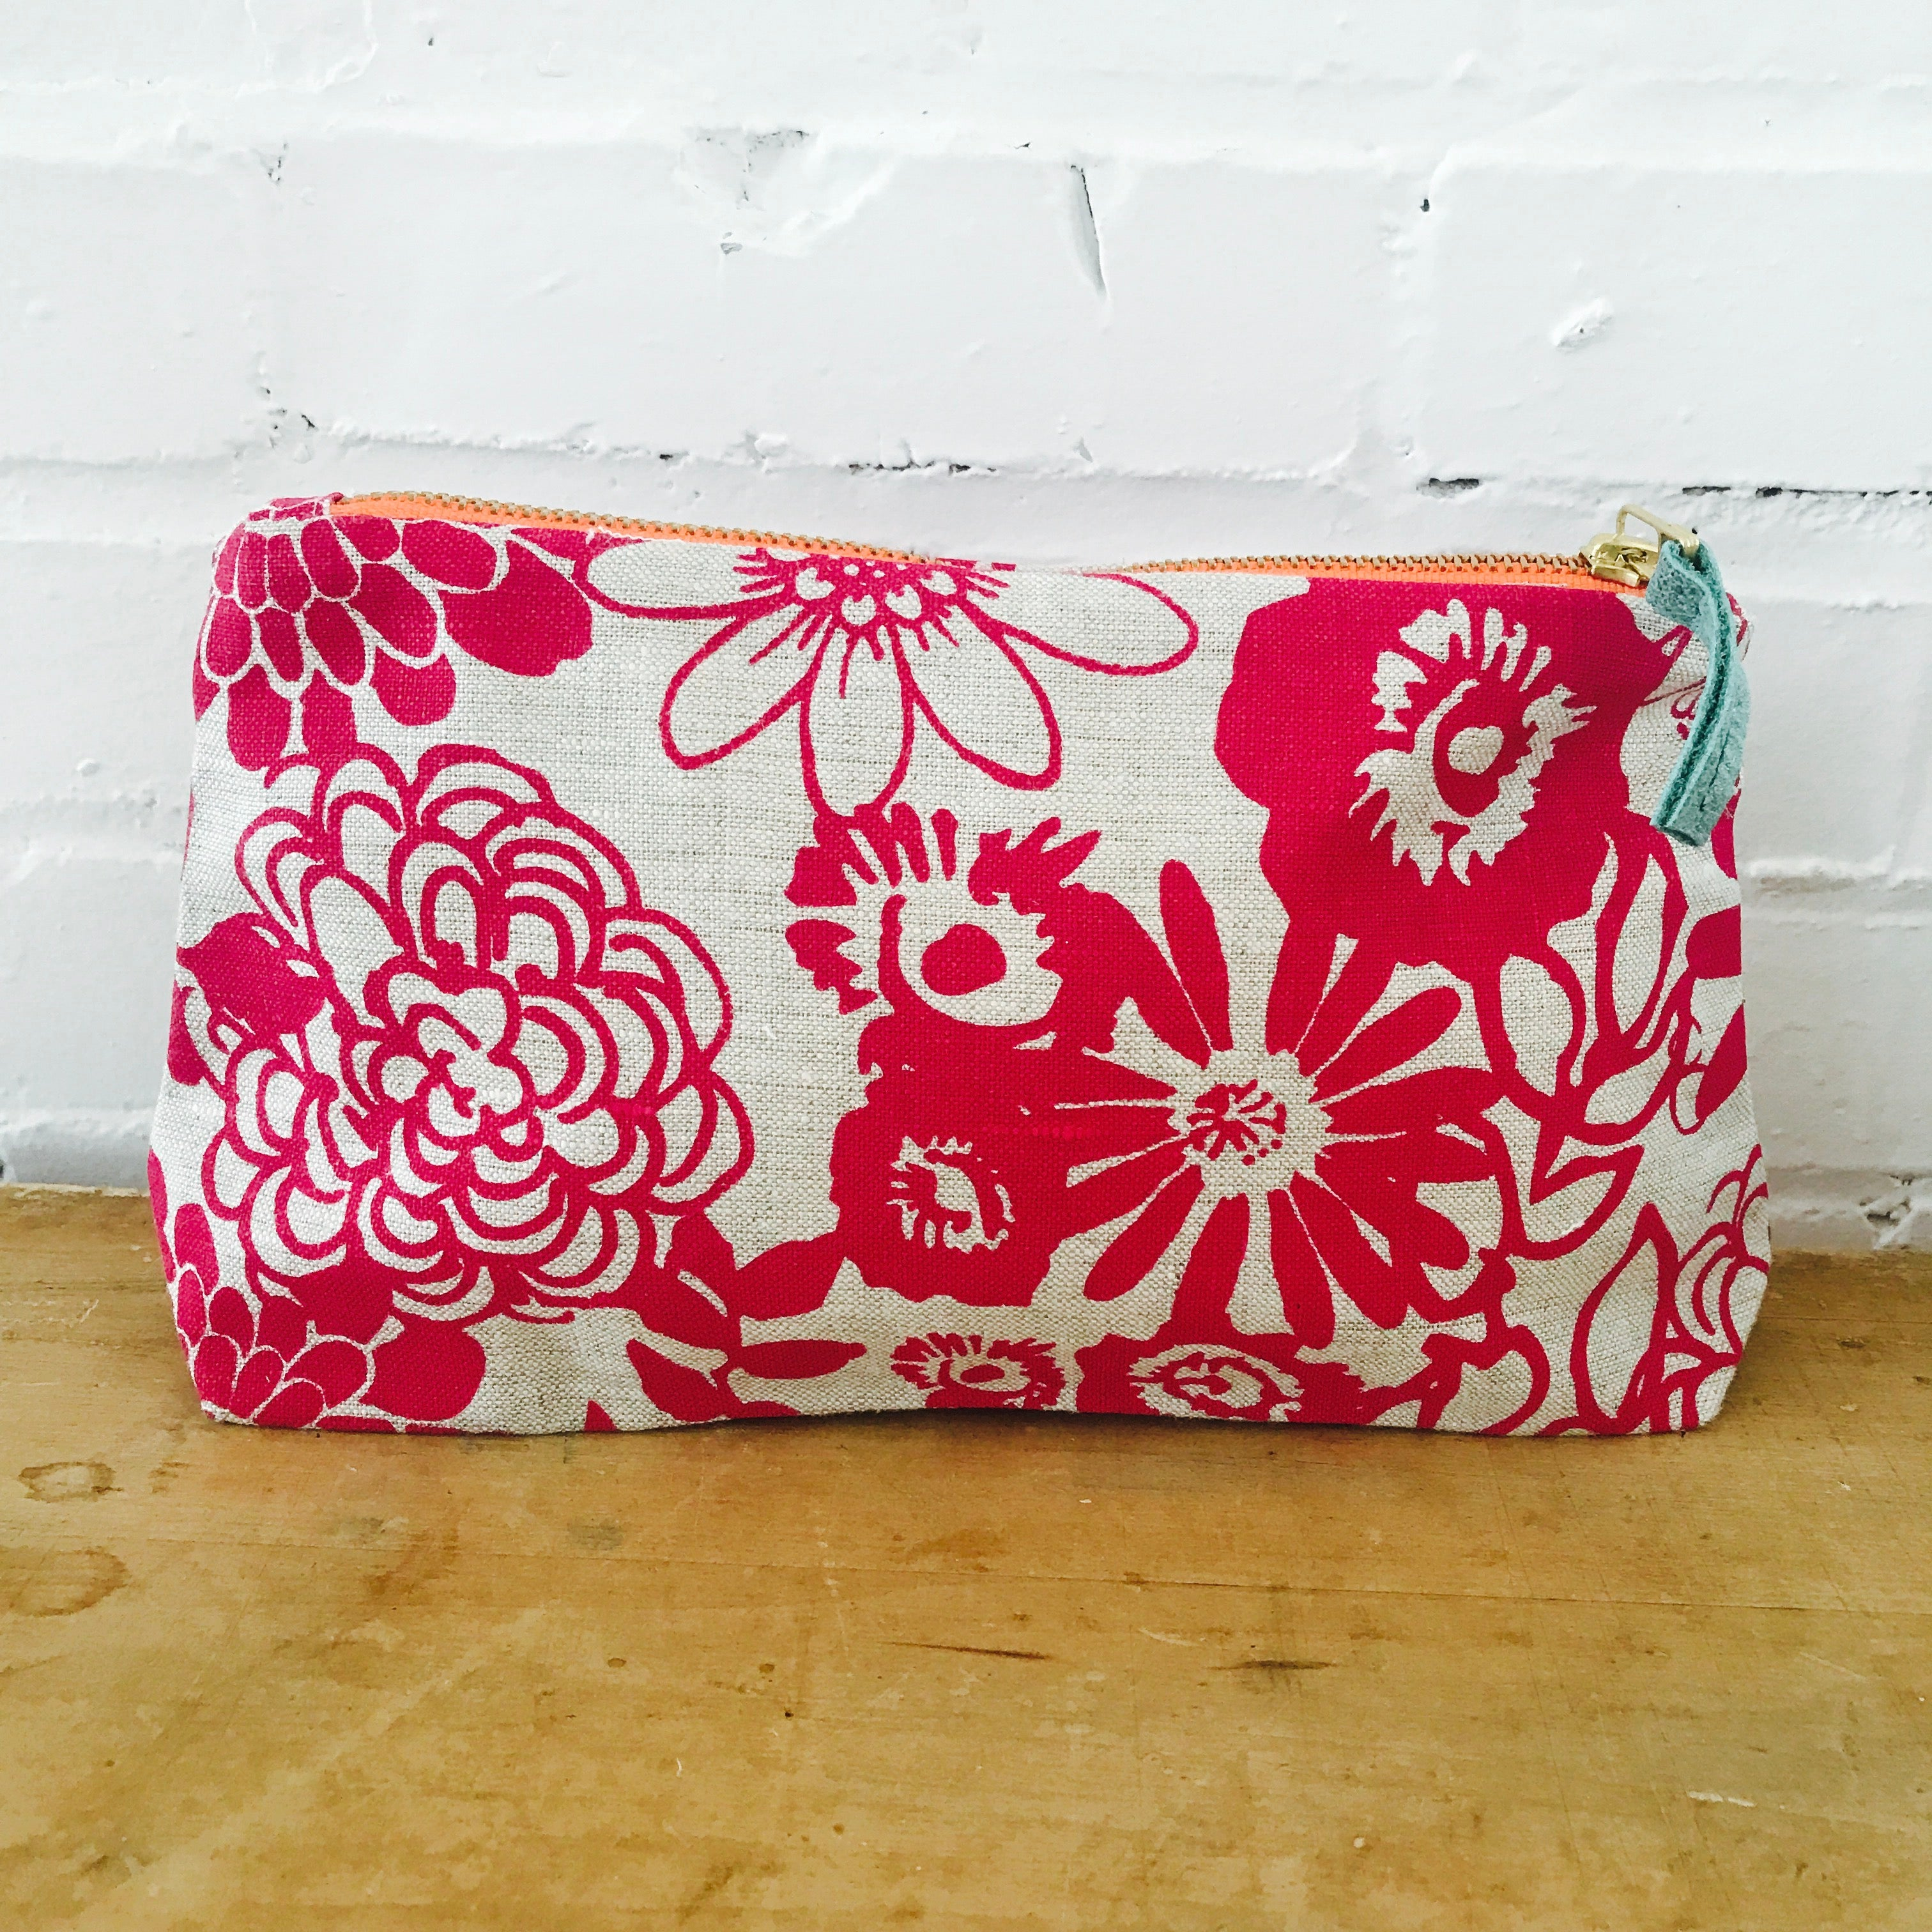 BERRY WILD GARDEN ZIPPER BAG